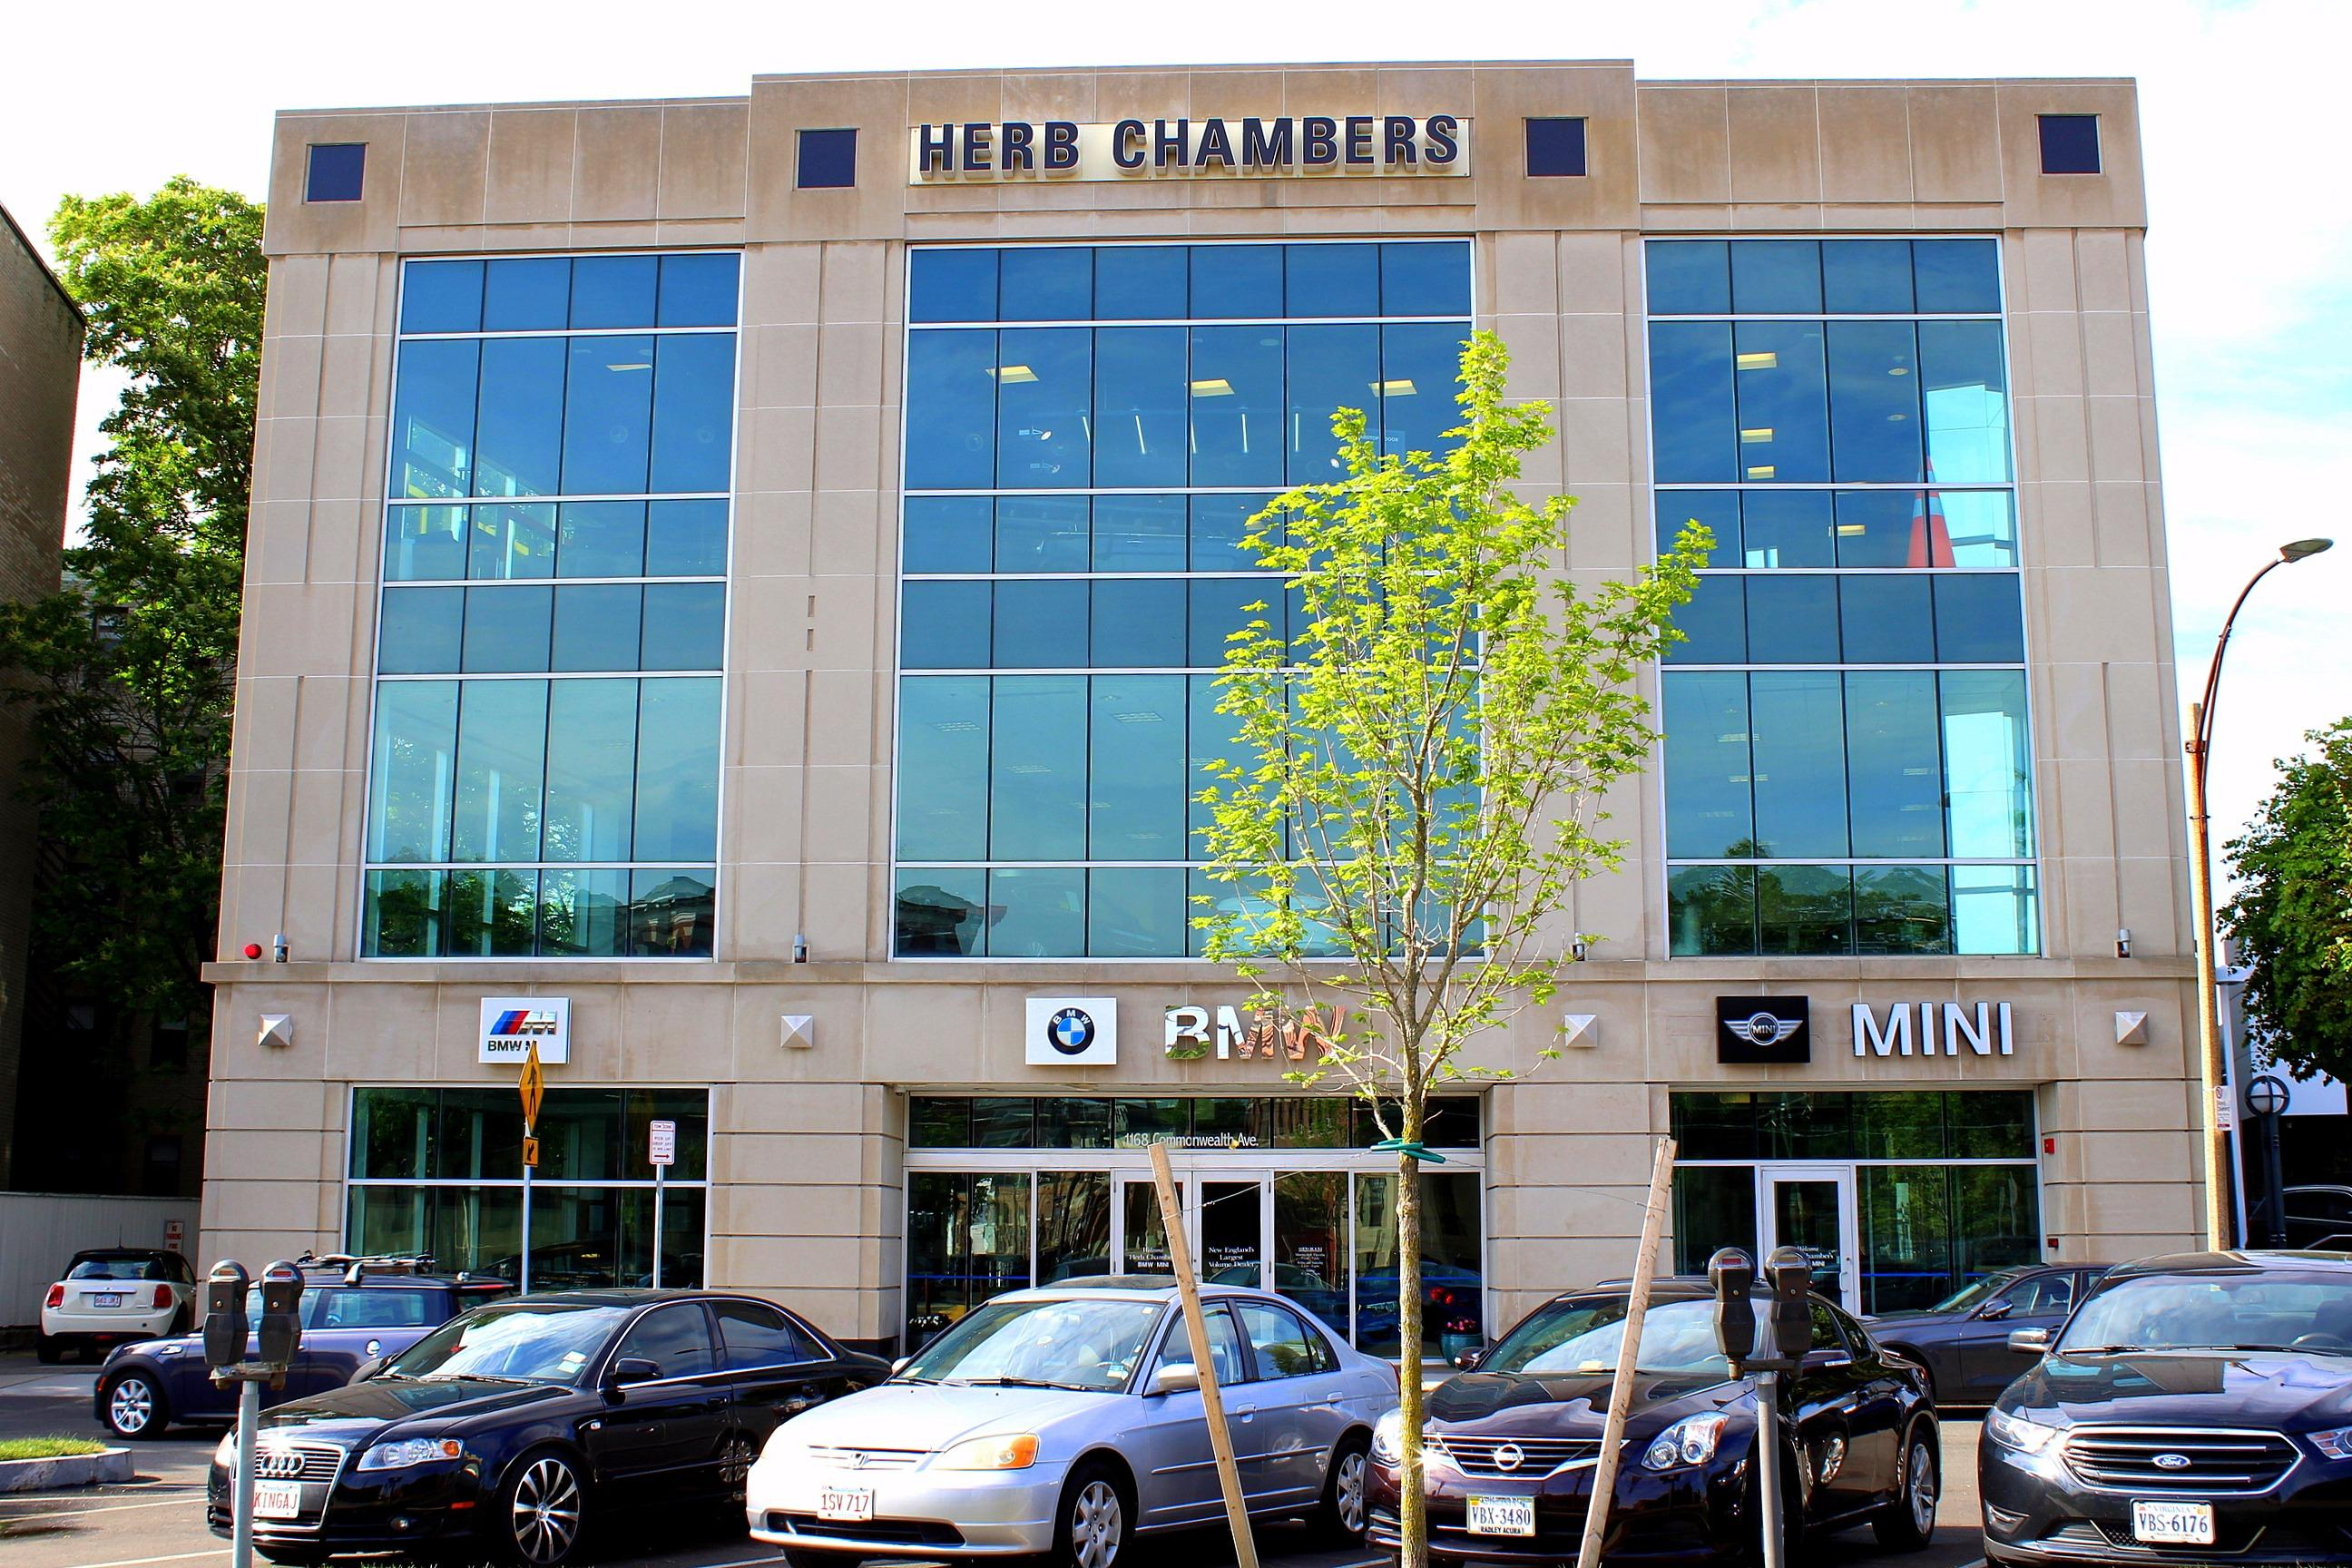 herb chambers bmw of boston 1168 commonwealth ave boston, ma auto